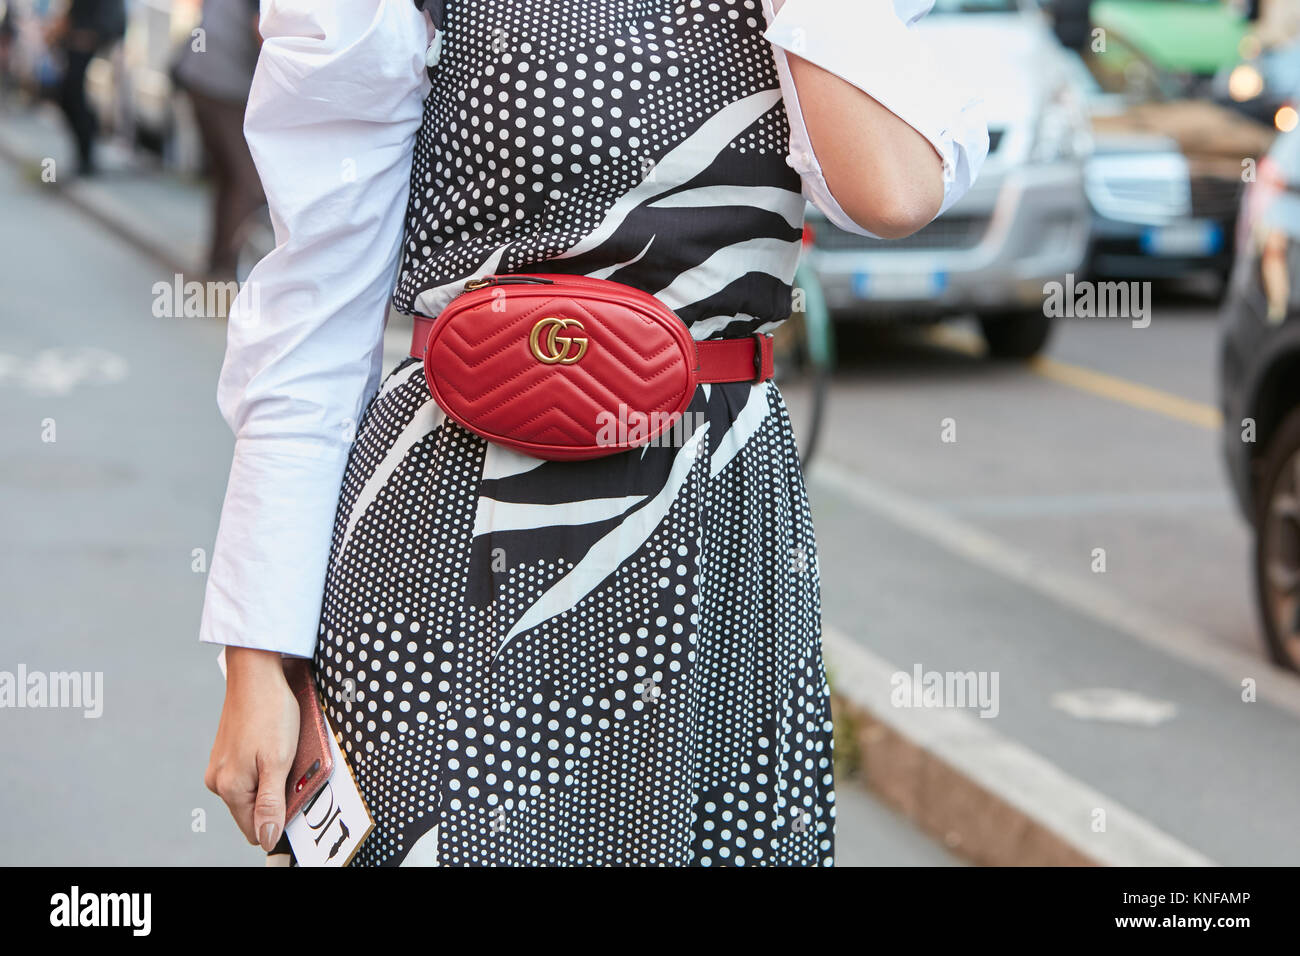 MILAN - SEPTEMBER 24: Woman with Gucci red leather pouch and black and white dress before Trussardi fashion show, - Stock Image